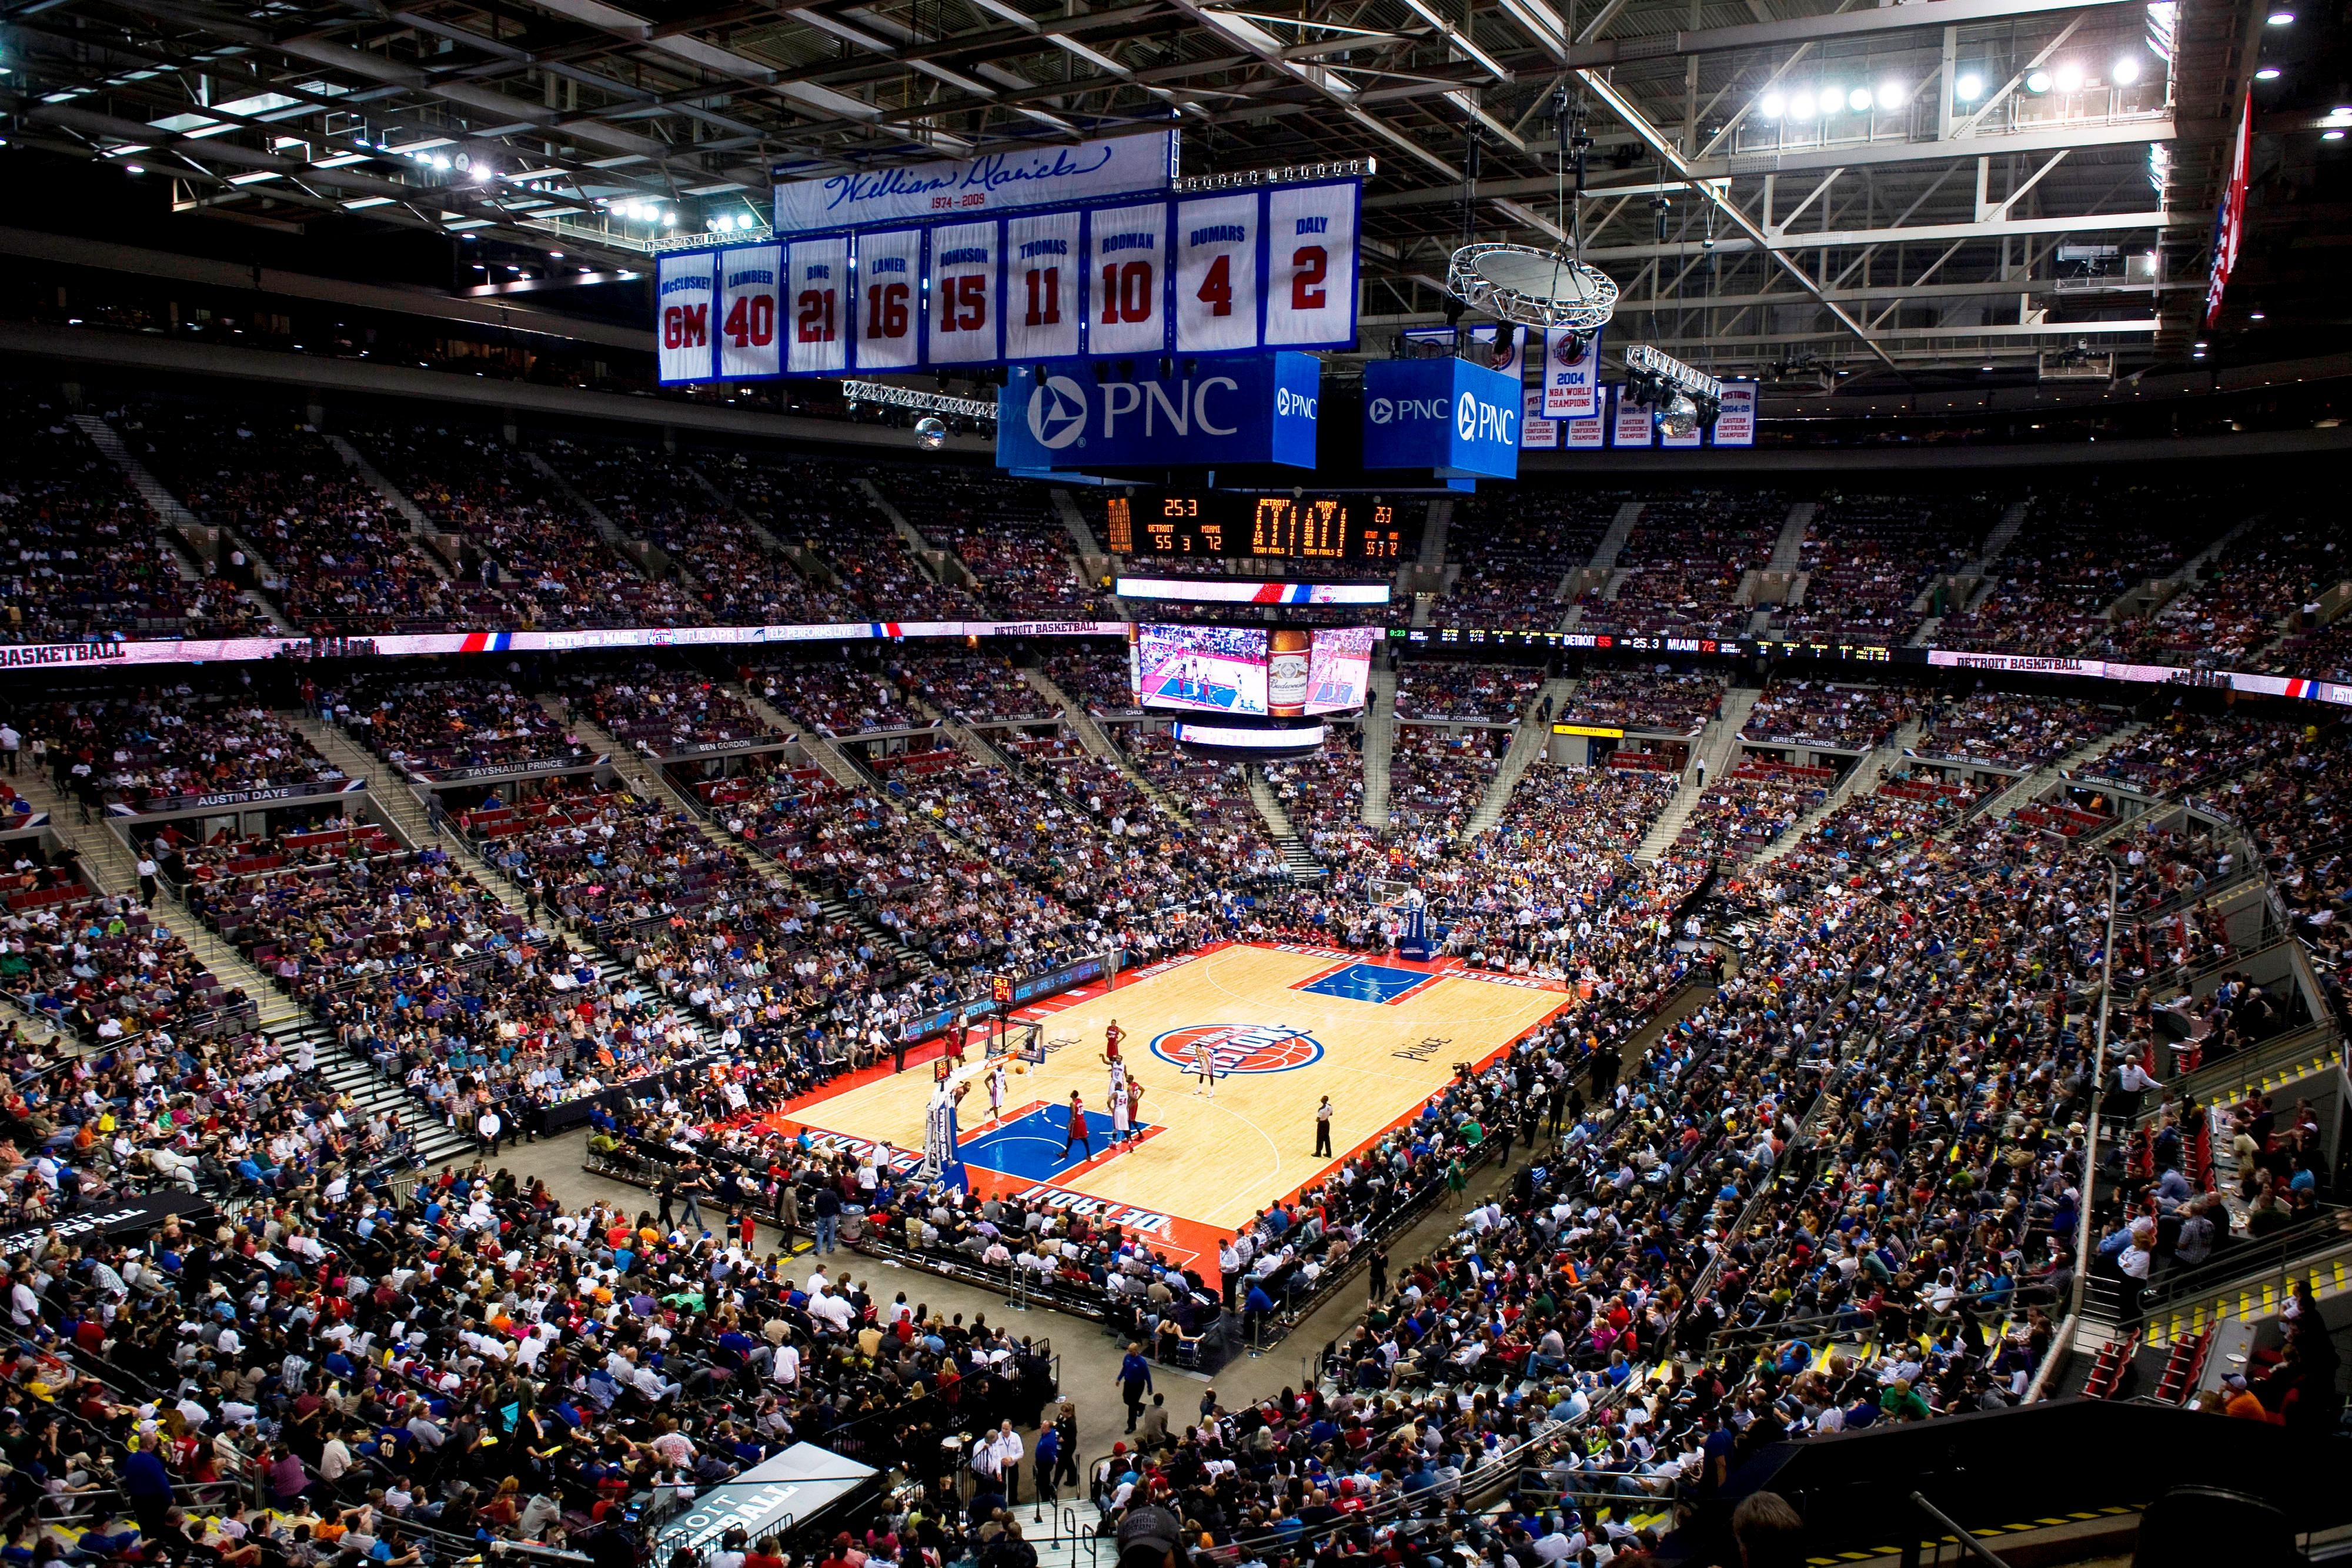 The Palace of Auburn Hills